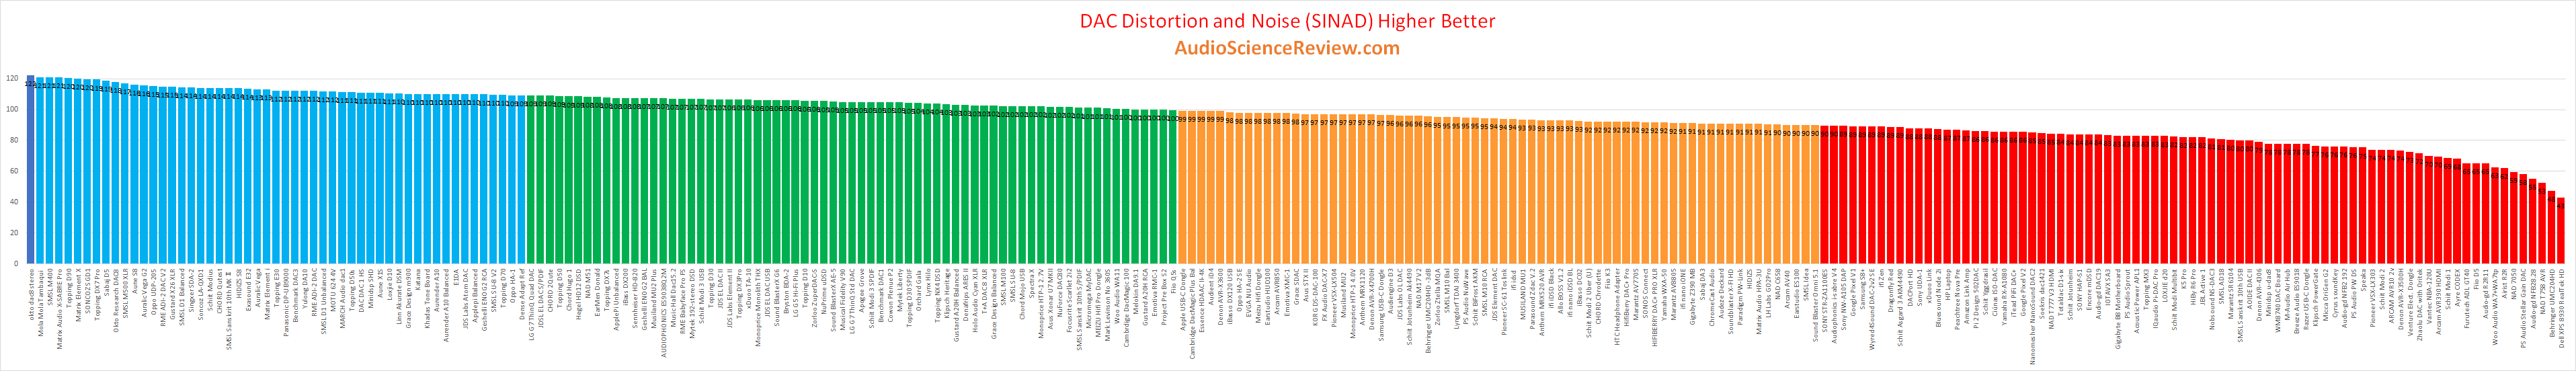 Best stereo dac usb review measurements.png